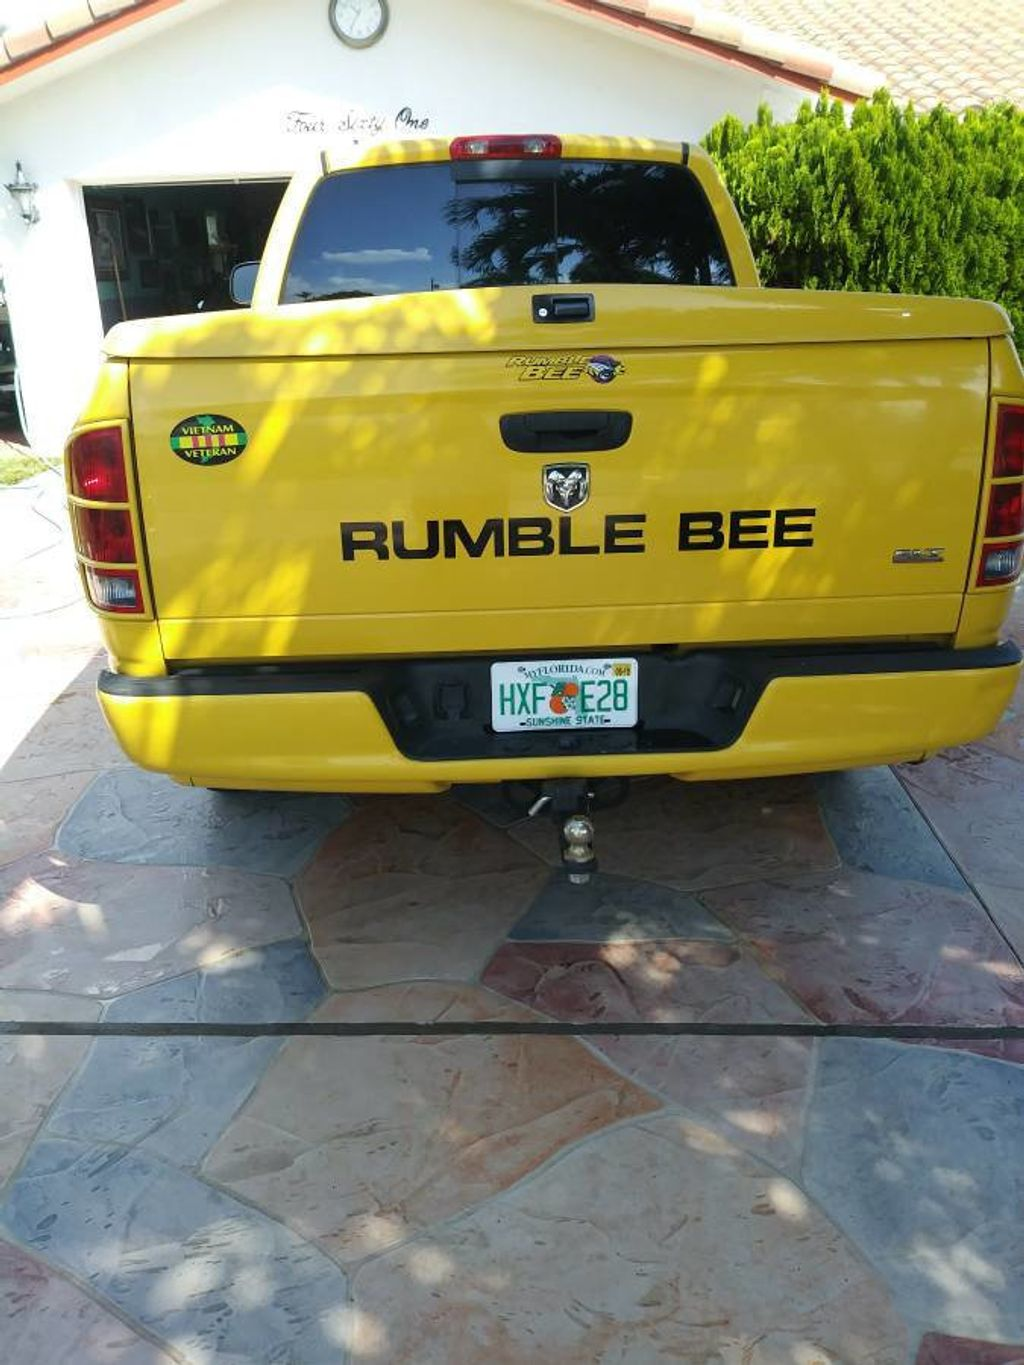 2005 Used Dodge Ram 1500 Rumble Bee Limited Edition For Sale At Webe Dash Cover 2003 17386933 2